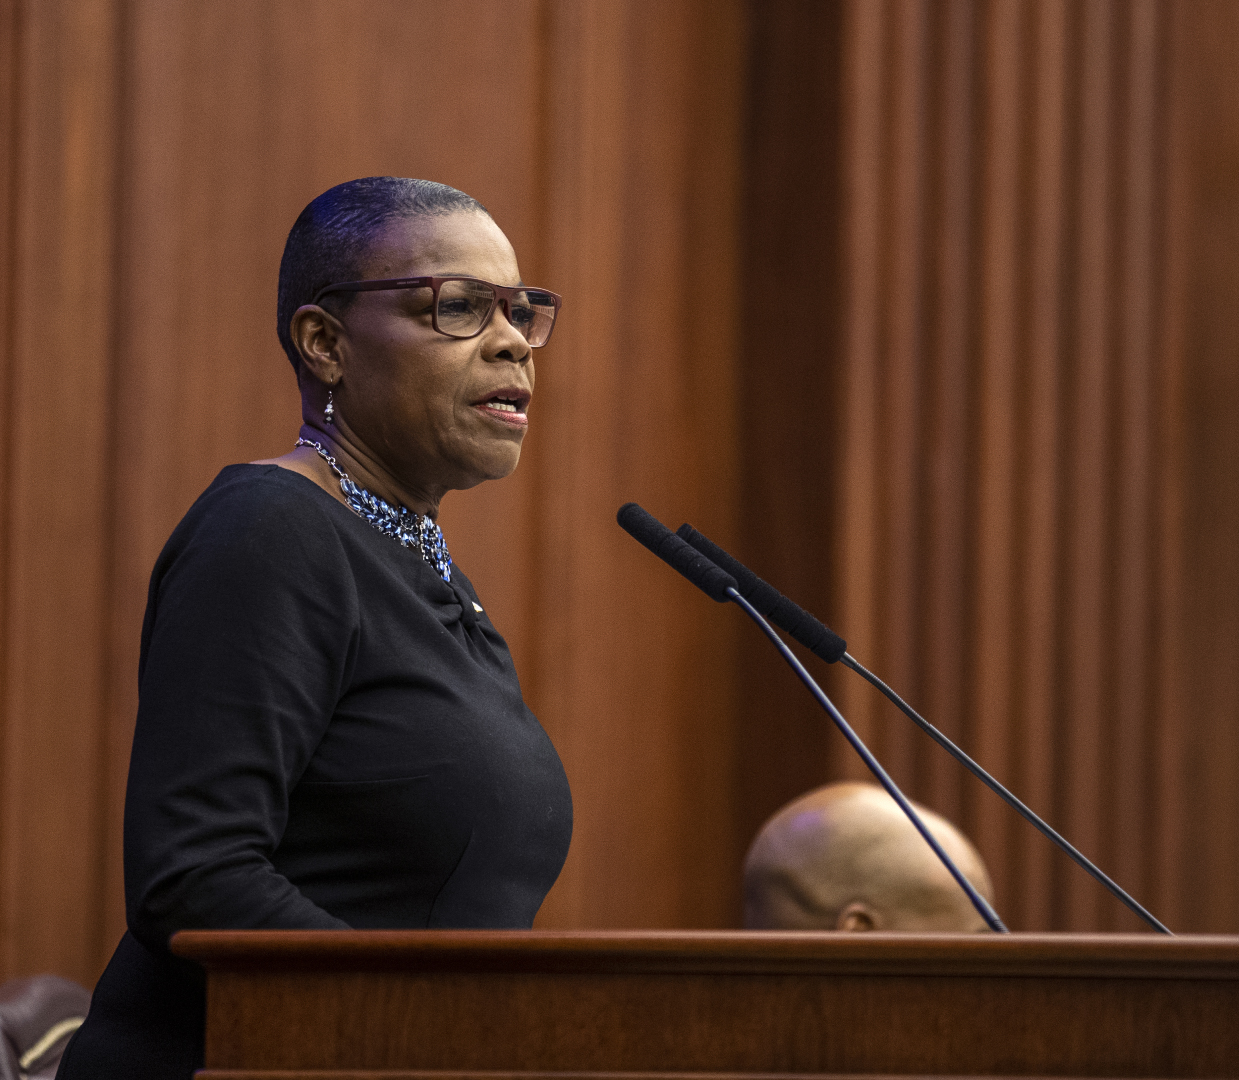 Sen. Audrey Gibson was not sold on the new Governor's speech.